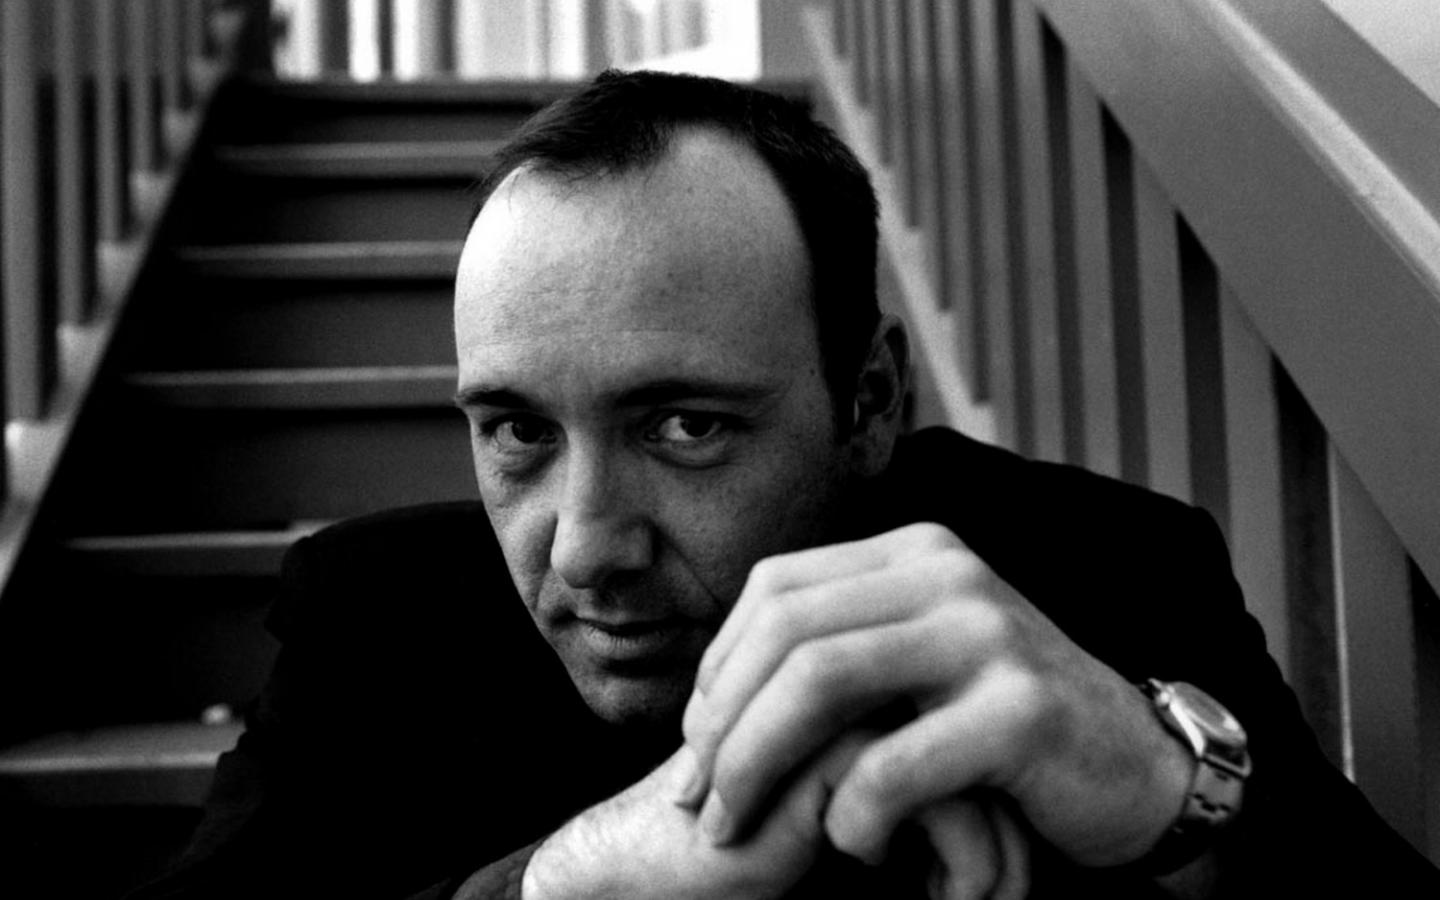 1440x900 - Kevin Spacey Wallpapers 18